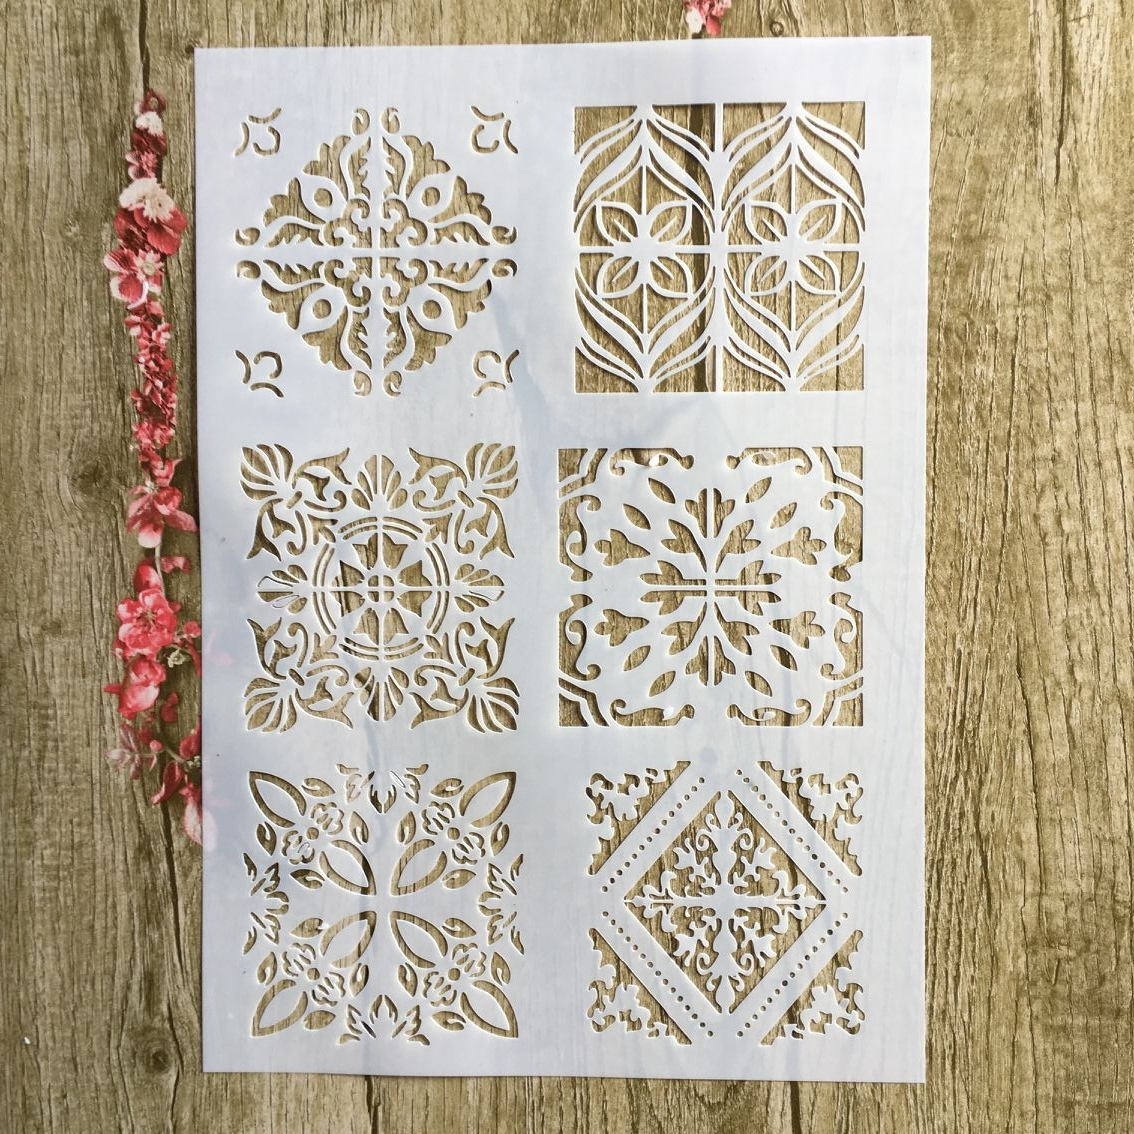 29 * 21cm Compass Shape Lace DIY Stencils Wall Painting Scrapbook Coloring Embossing Album Decorative Paper Card Template